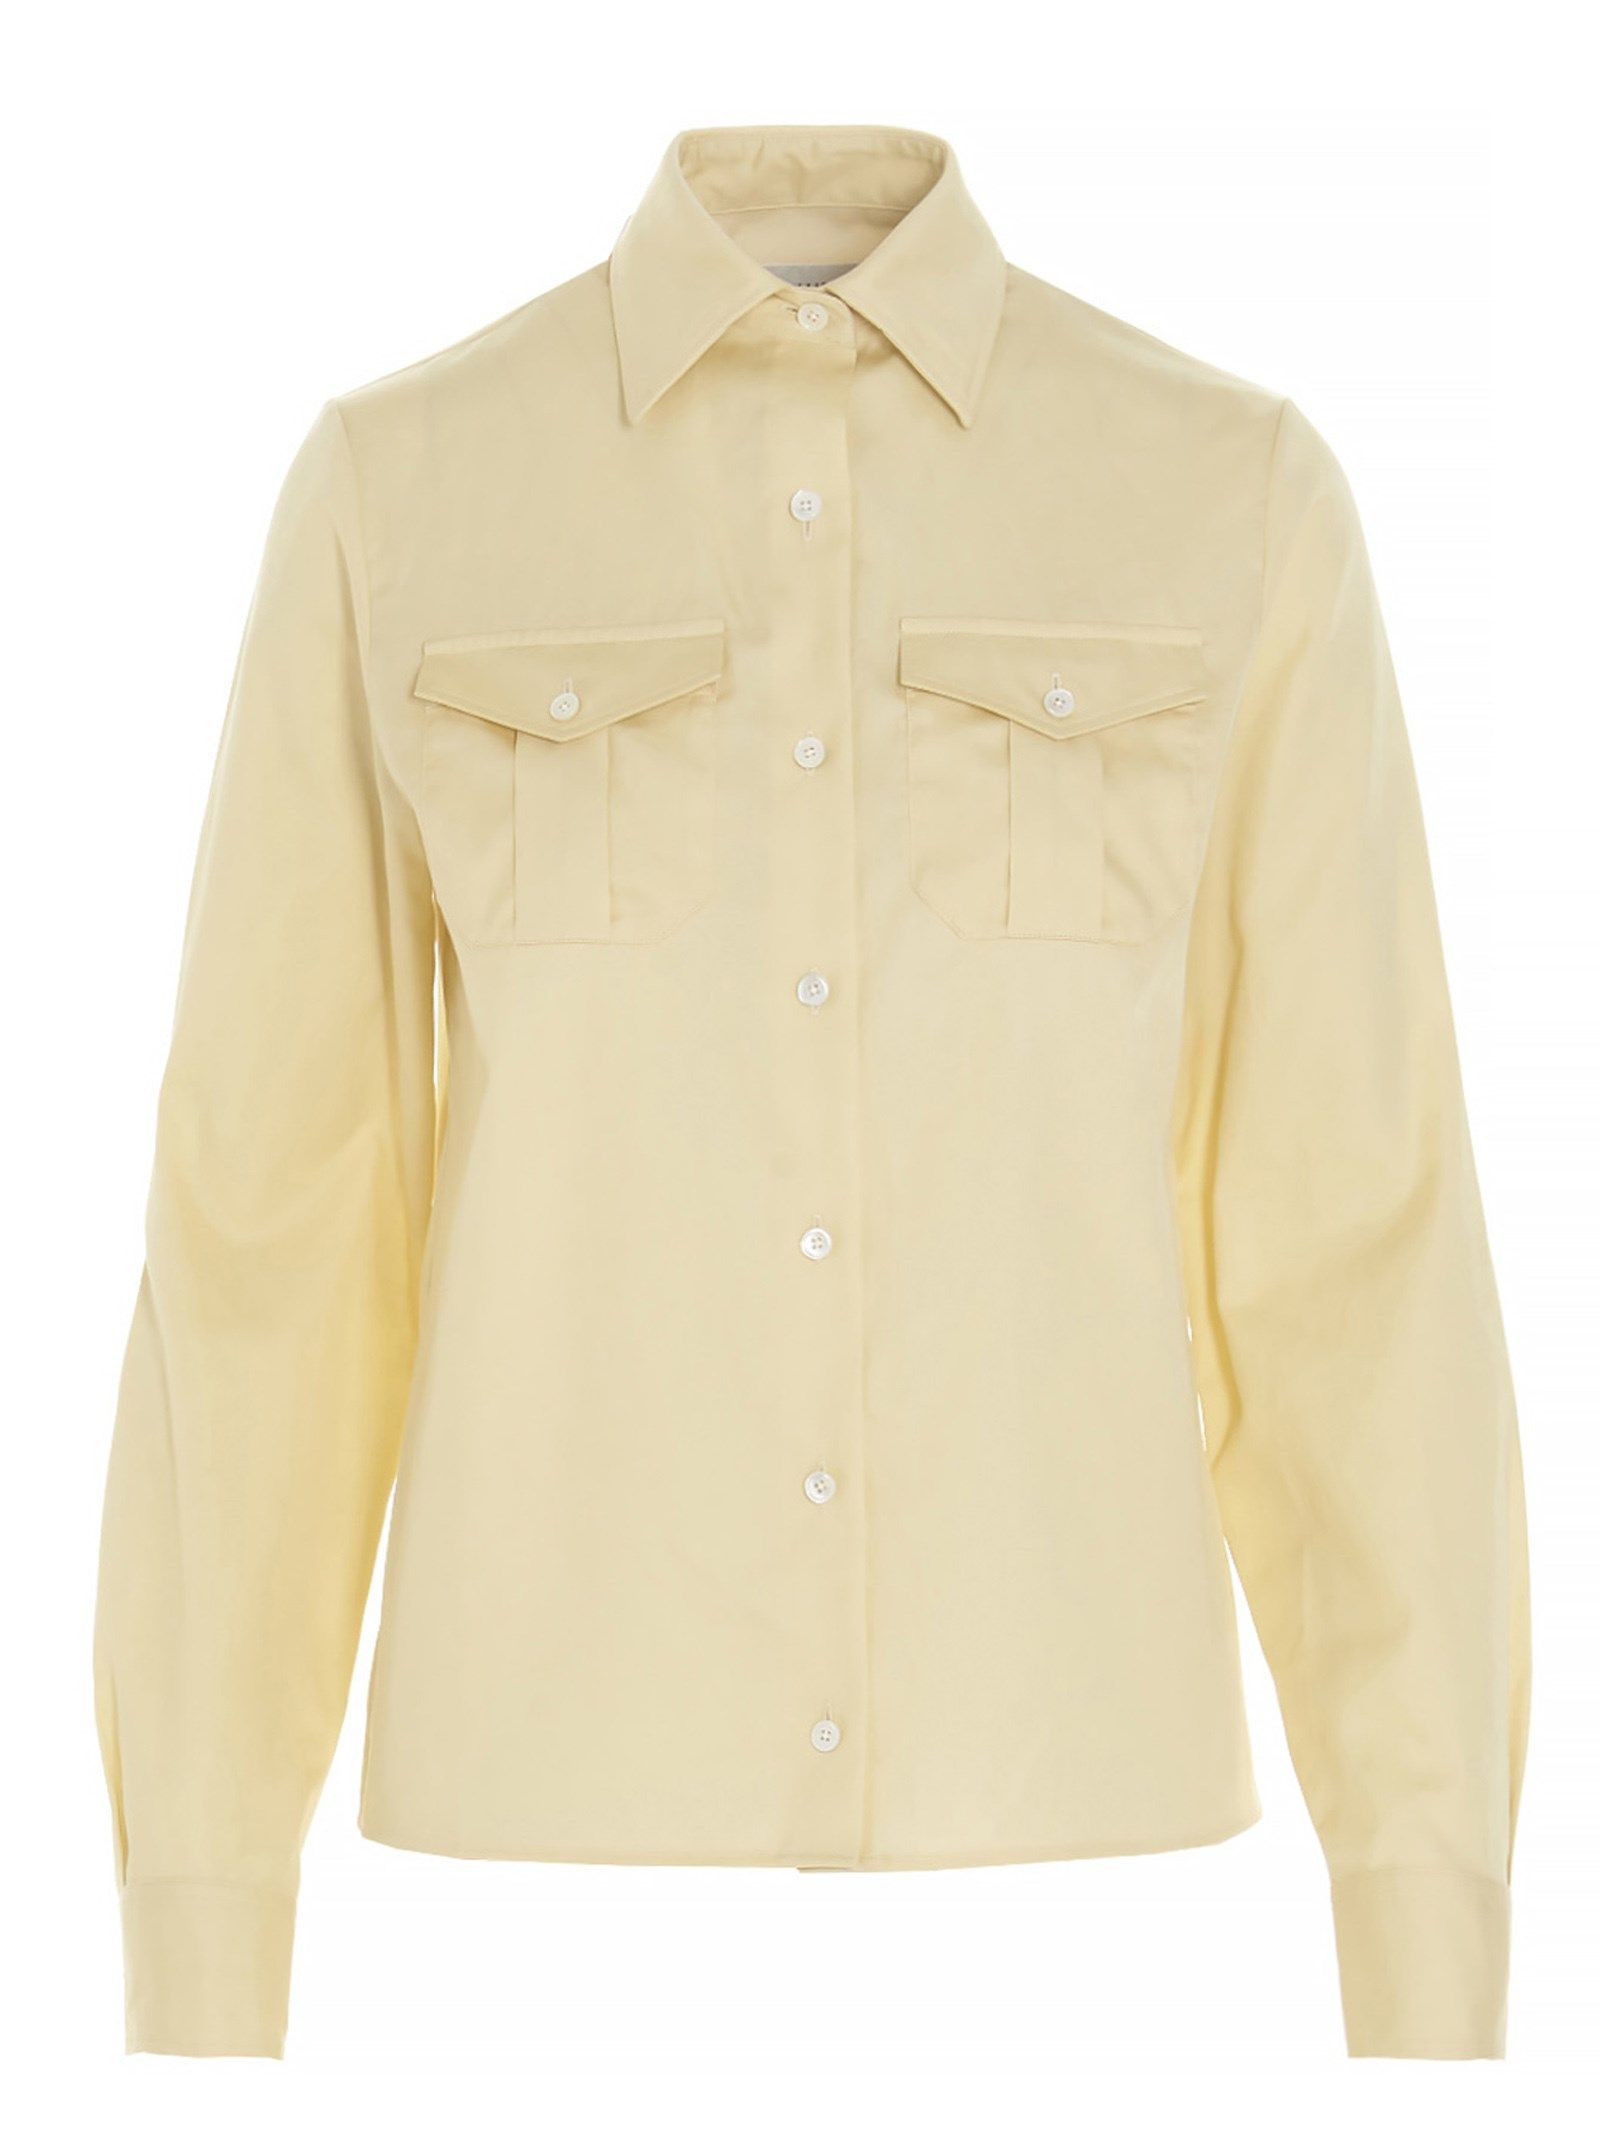 Lemaire LEMAIRE WOMEN'S W211SH264LF560507 YELLOW OTHER MATERIALS SHIRT